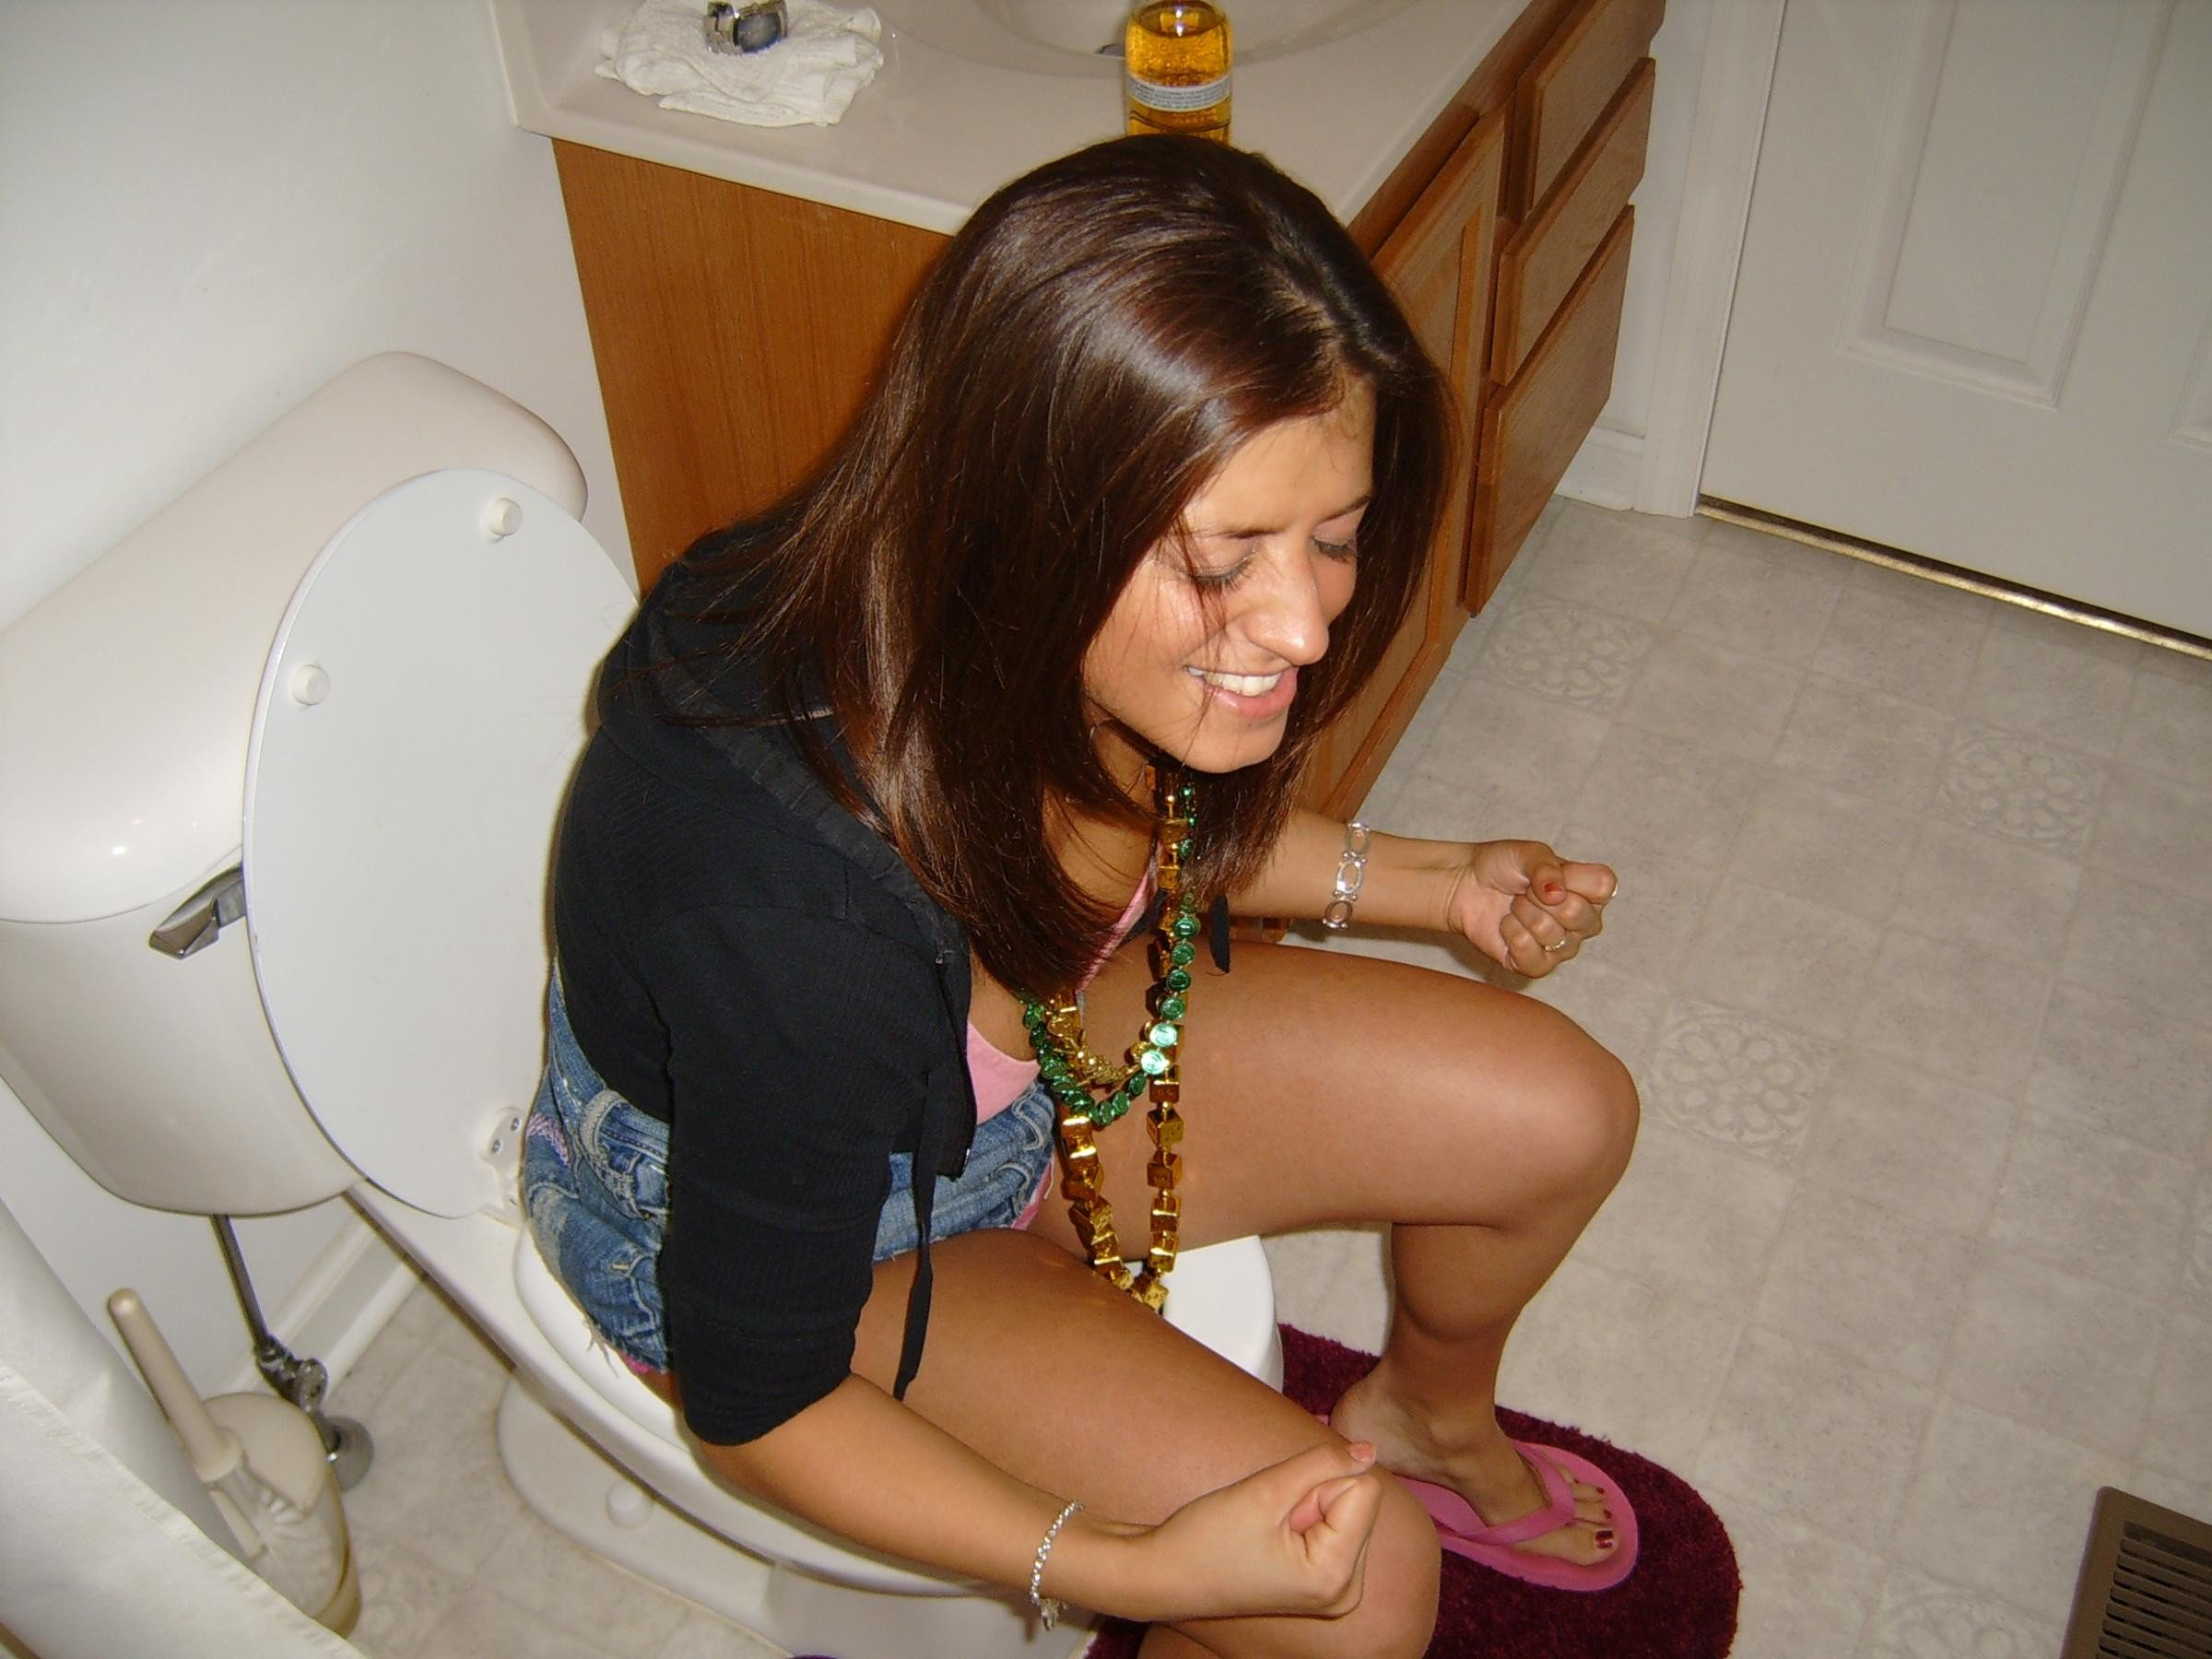 Upskirt girlsa on toilet unknown